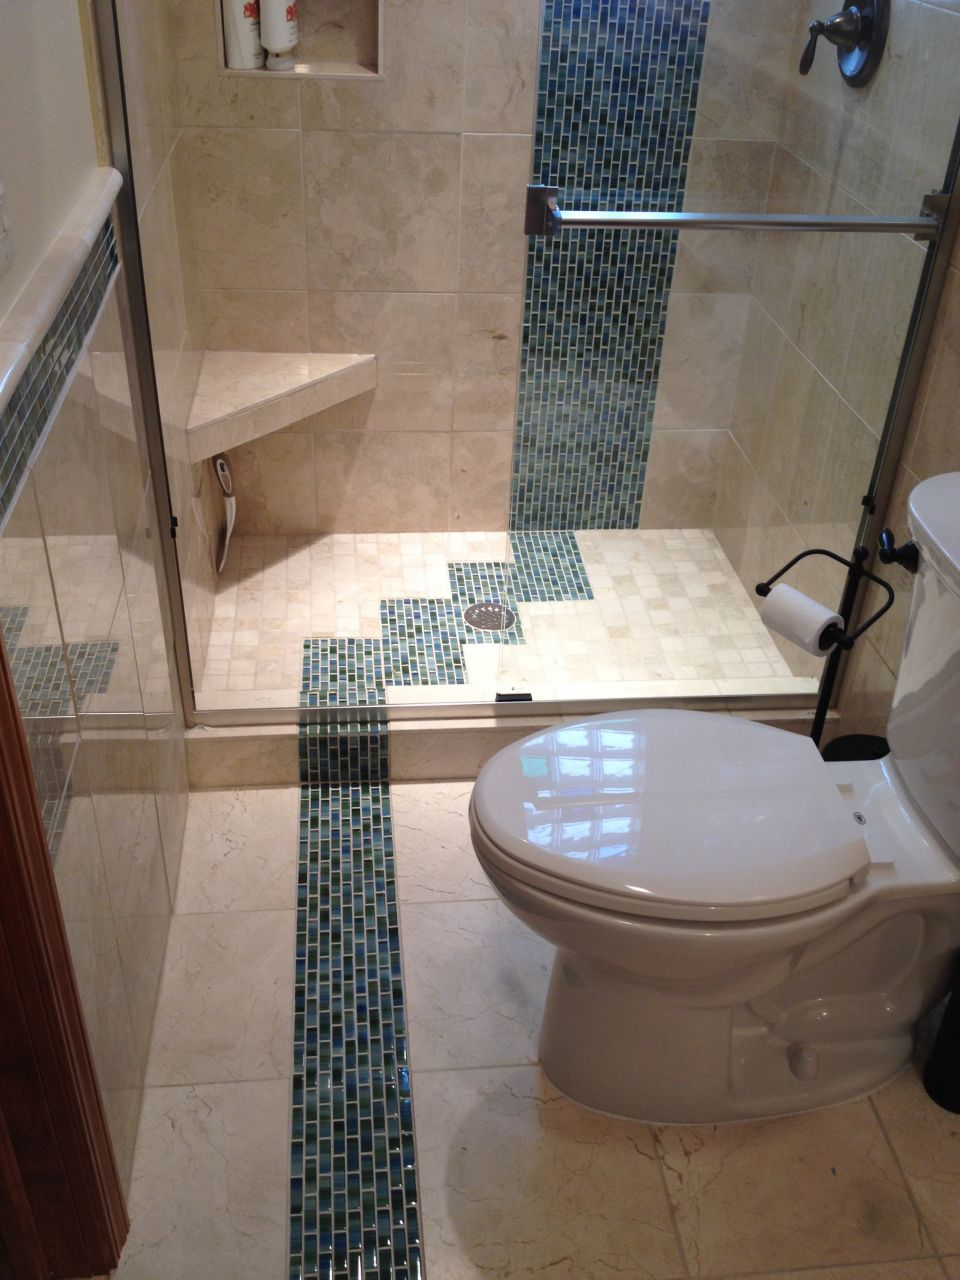 5' x 8' Luxury Bathroom Remodeling Frosted & Colored Glass ...